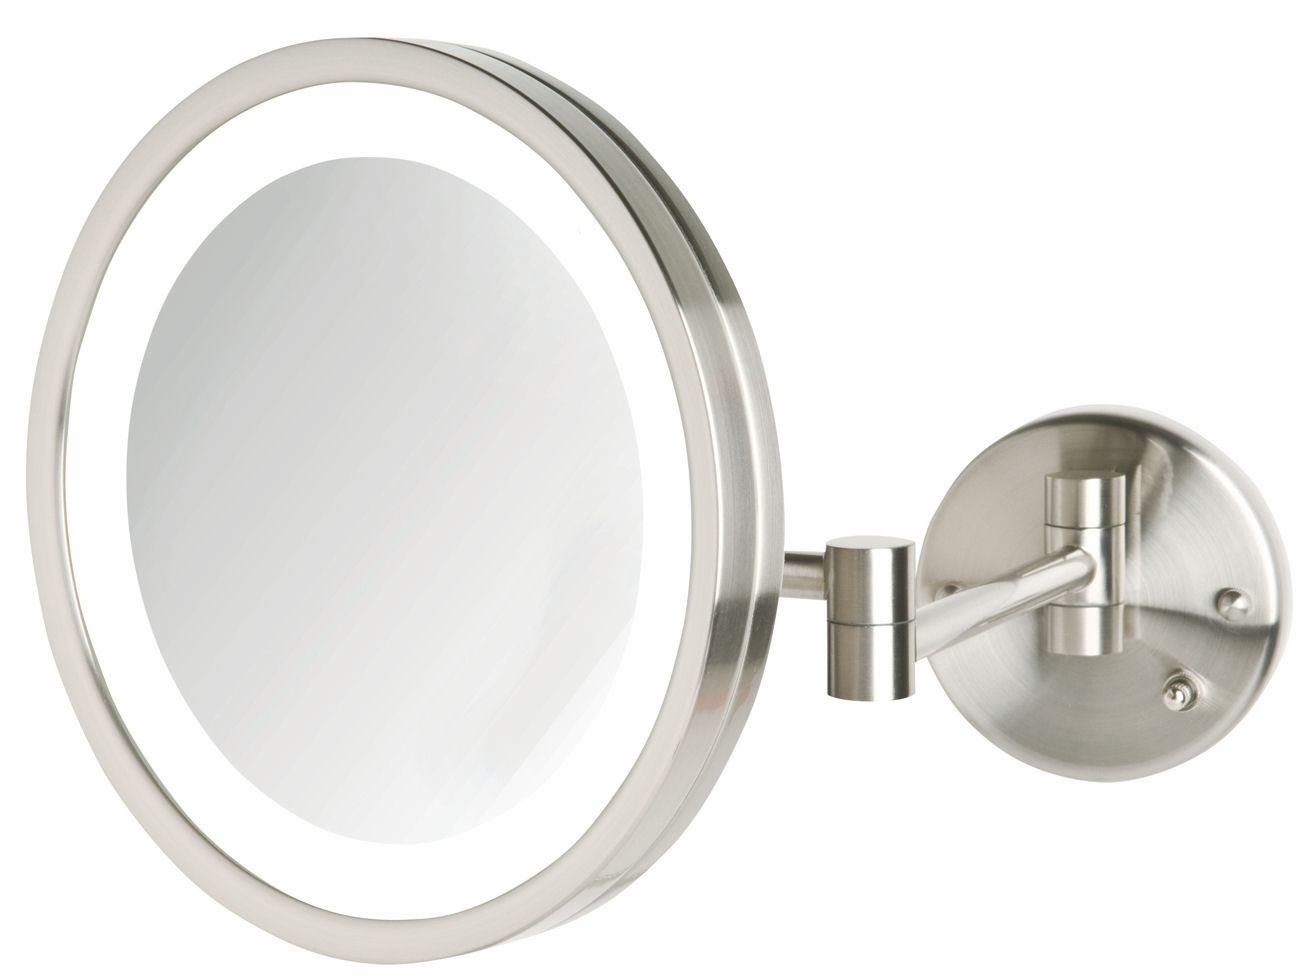 Permalink to Wall Mounted Magnifying Mirror With Lighted 10x